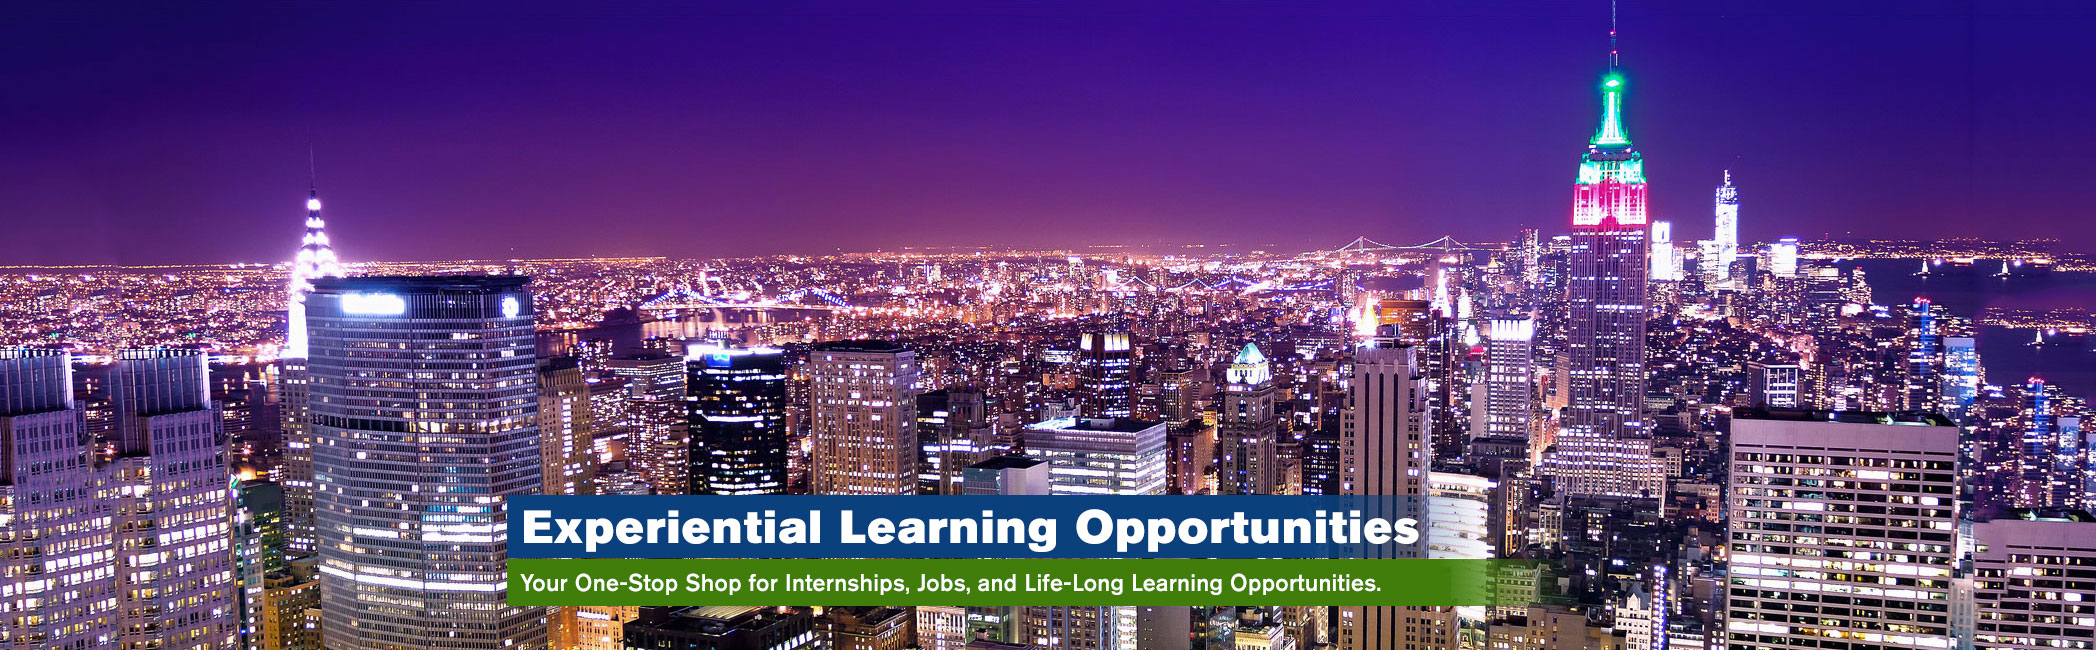 Experiential Learning Opportunities at Lehman & CUNY